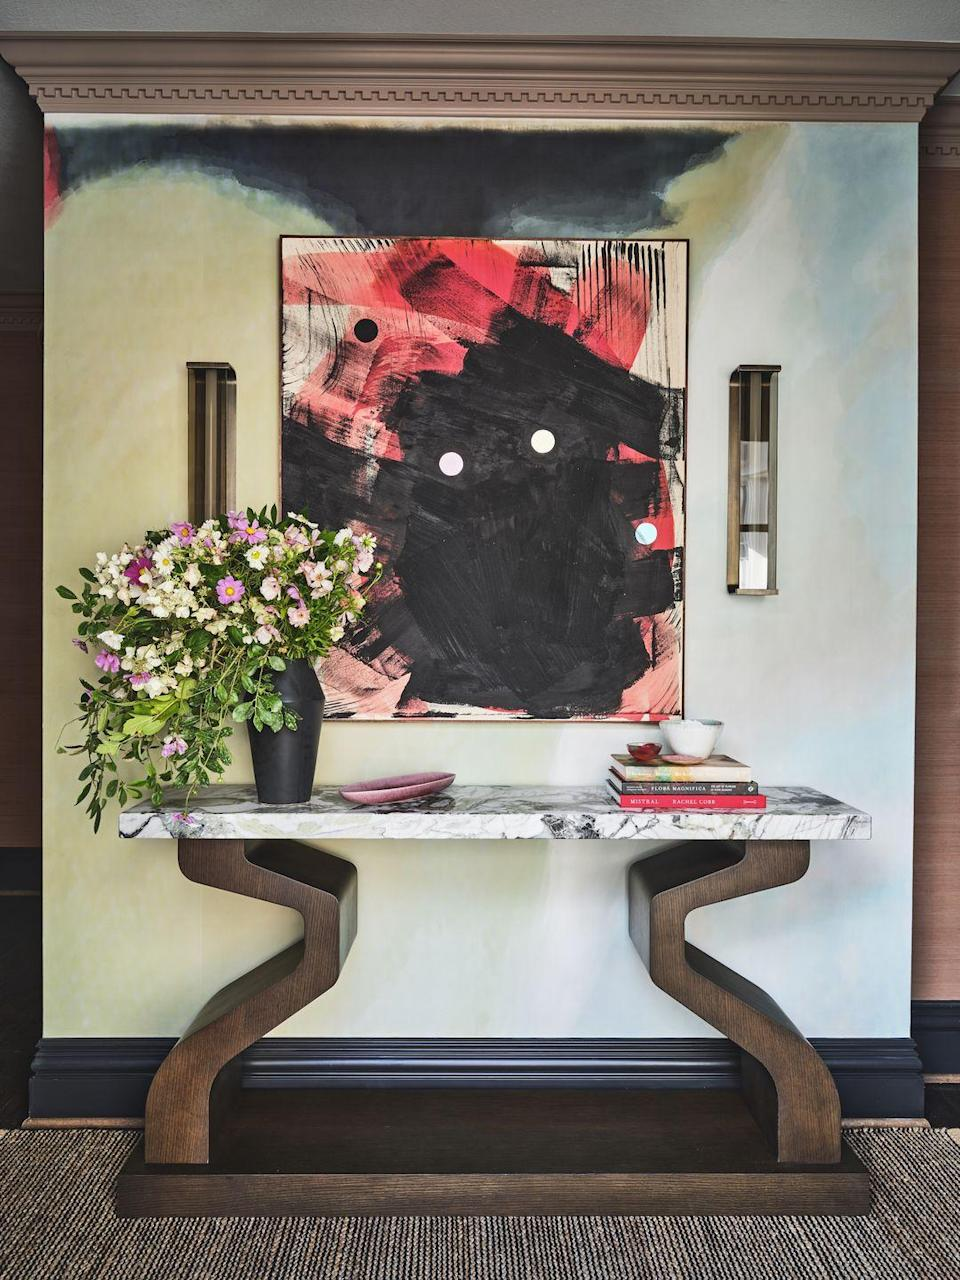 """<p>The extended back hallway is a threshold everyone coming in from the garage has to pass through, so Walsh really wanted to evoke a feeling of being welcomed home with a sumptuous runner from <a href=""""https://www.newmoonrugs.com/"""" rel=""""nofollow noopener"""" target=""""_blank"""" data-ylk=""""slk:New Moon Rugs"""" class=""""link rapid-noclick-resp"""">New Moon Rugs</a> and a place to make an important mental transition from work or school life to life at home. Since there was so much wall space to play with, she turned this area into a gallery. Her lone piece of furniture is a stunning sculptural console from FBC London and the walls are filled with artworks from Conduit in Dallas among others that help the brain dissociate from the stress of the day. Walsh hopes this space helps one become present in his or her home before connecting with the rest of the family.</p>"""